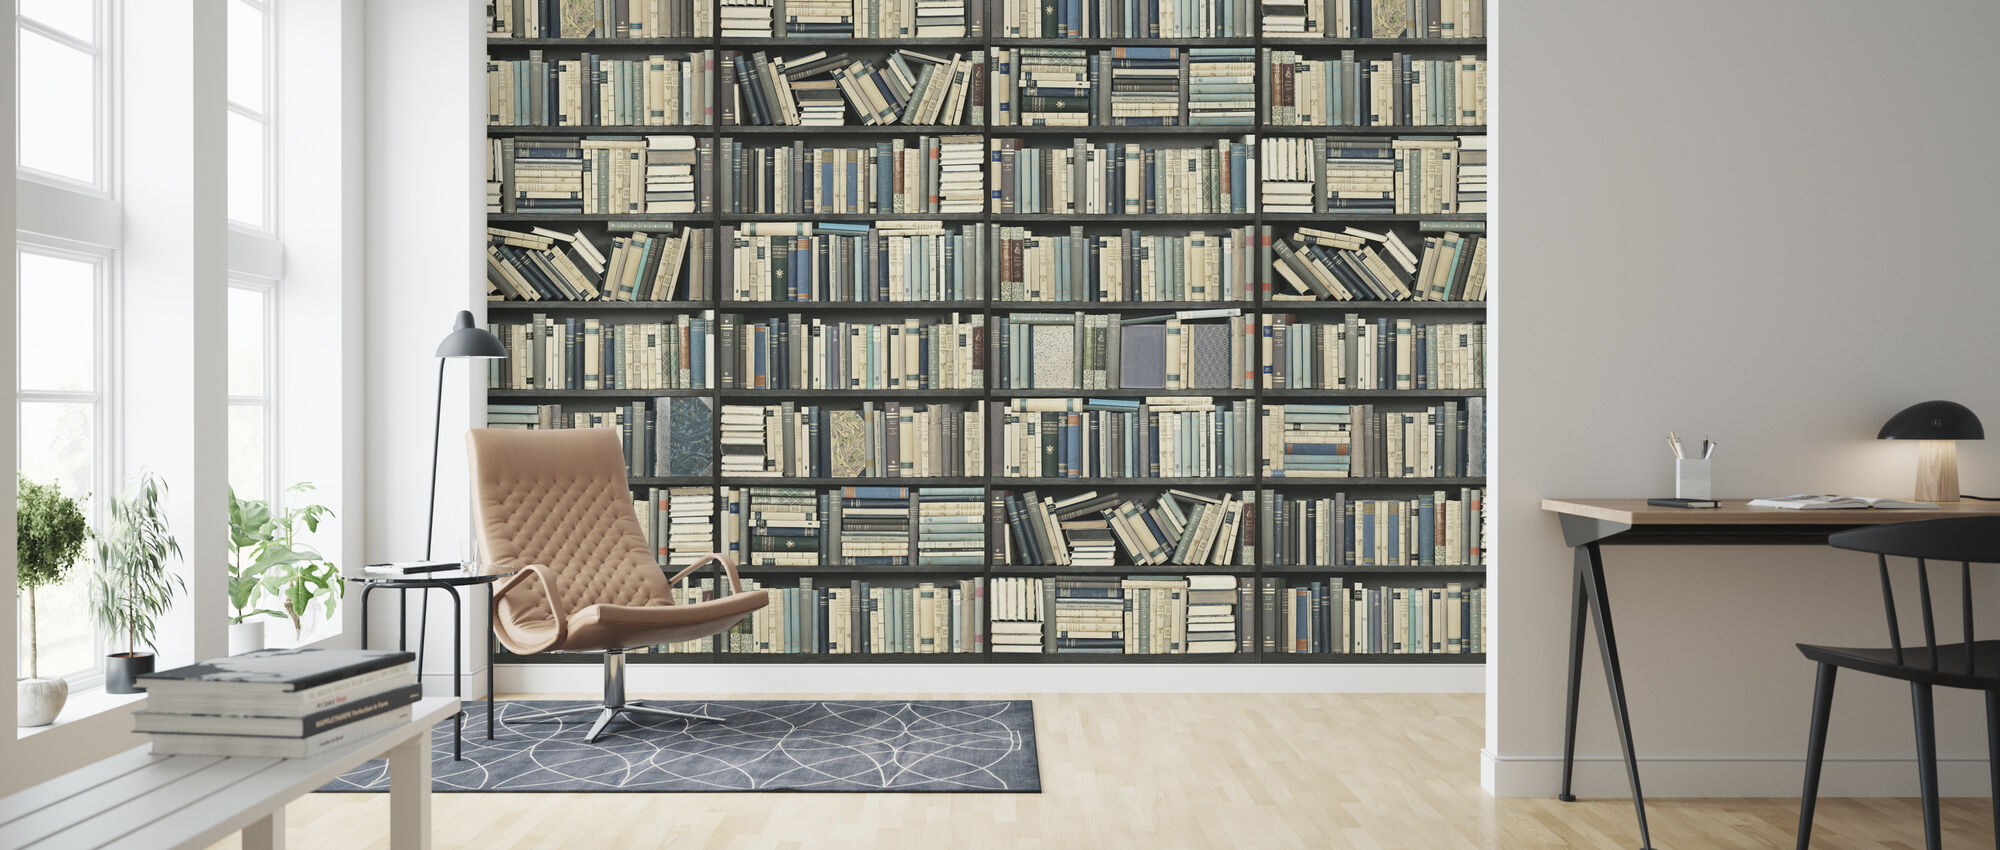 Bookshelf - Black Blue Long - Wallpaper - Living Room